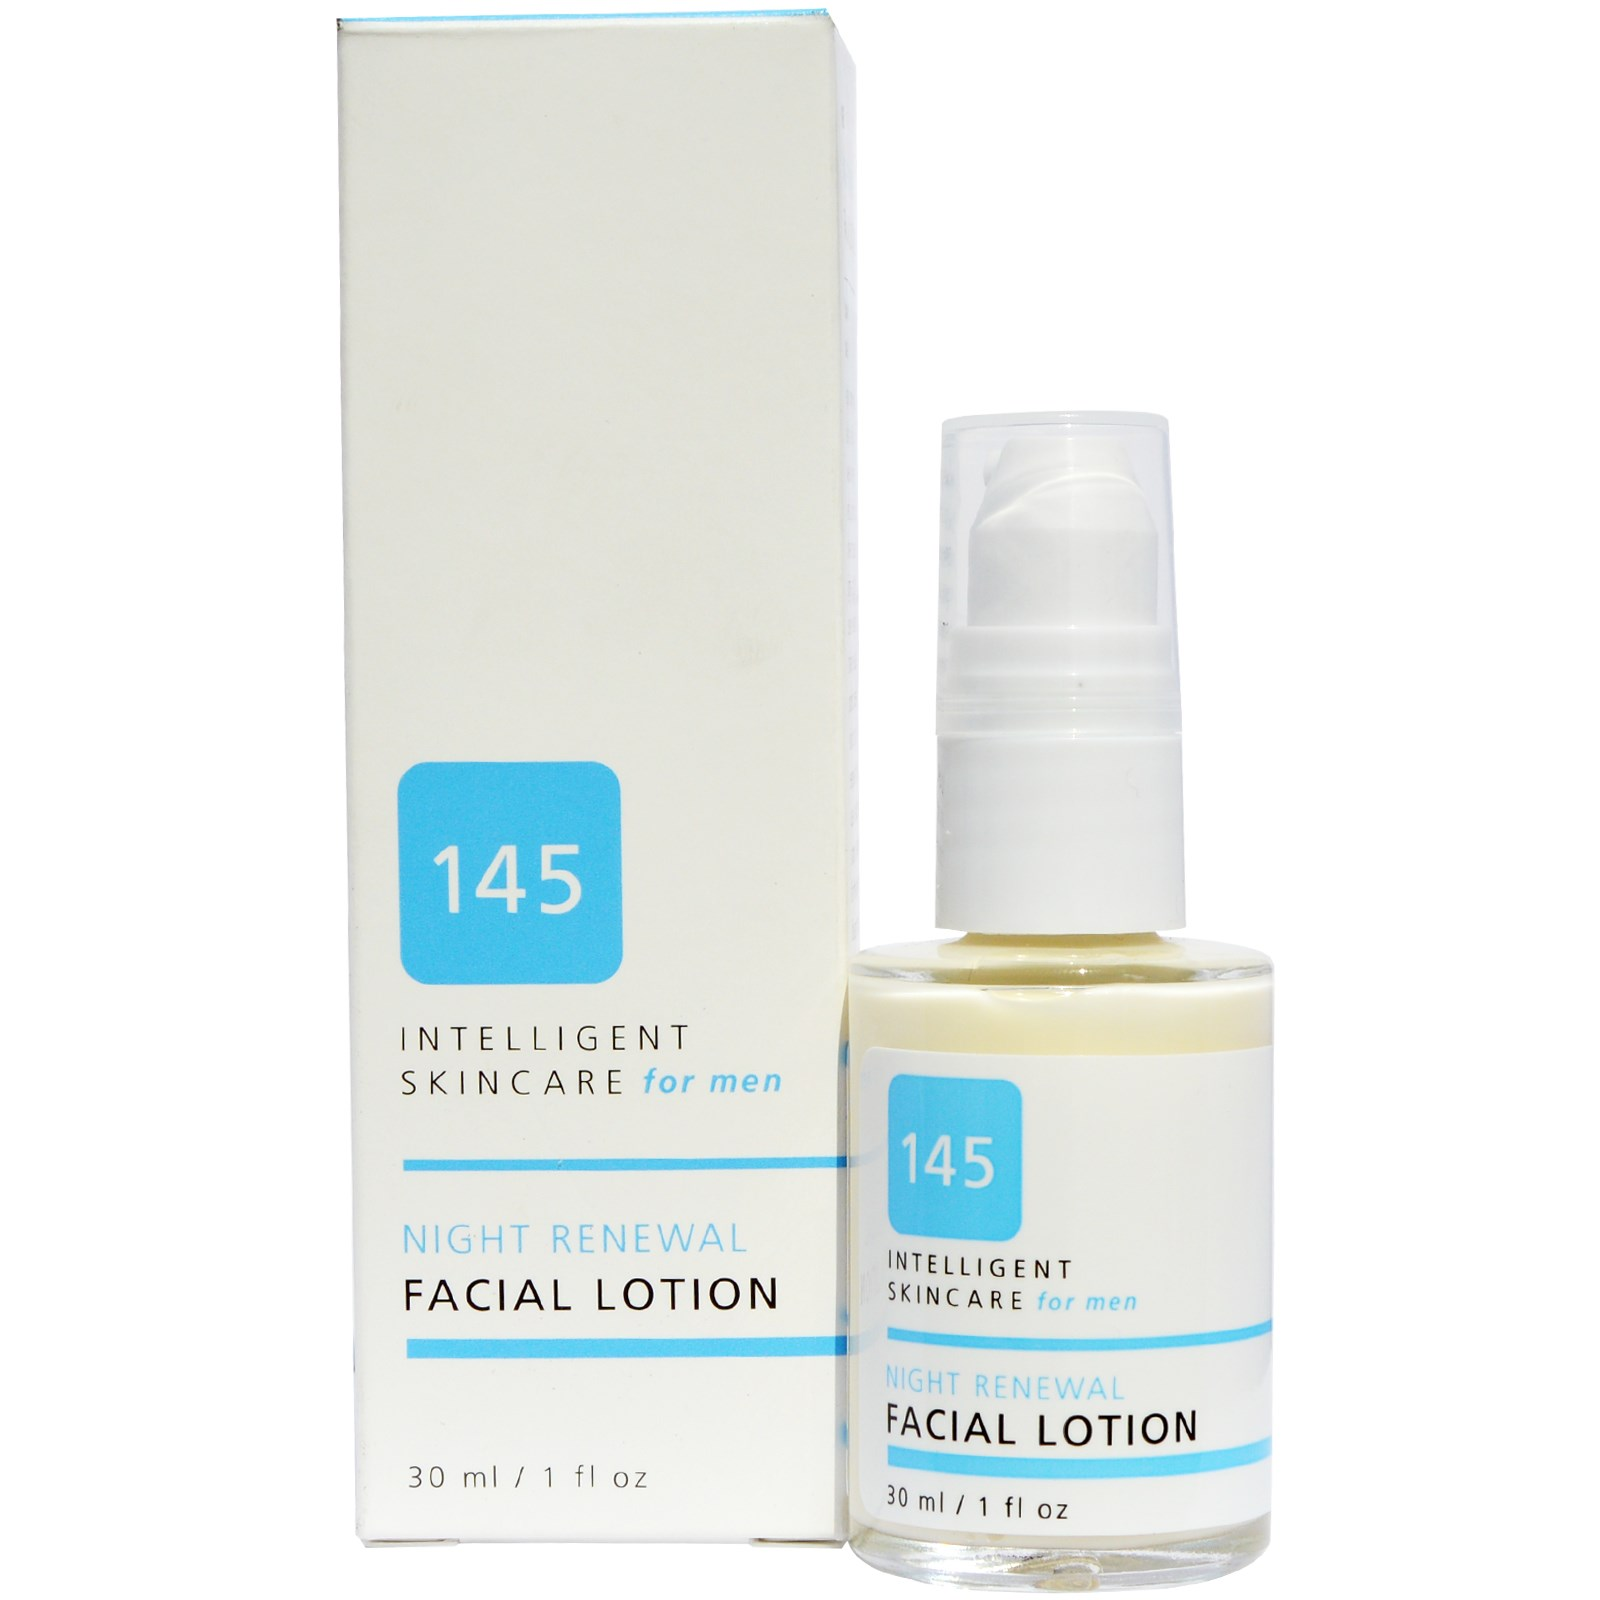 145 Intelligent Skincare for Men, Night Renewal Facial Lotion, By Earth Science, 1 fl oz(pack of 1)